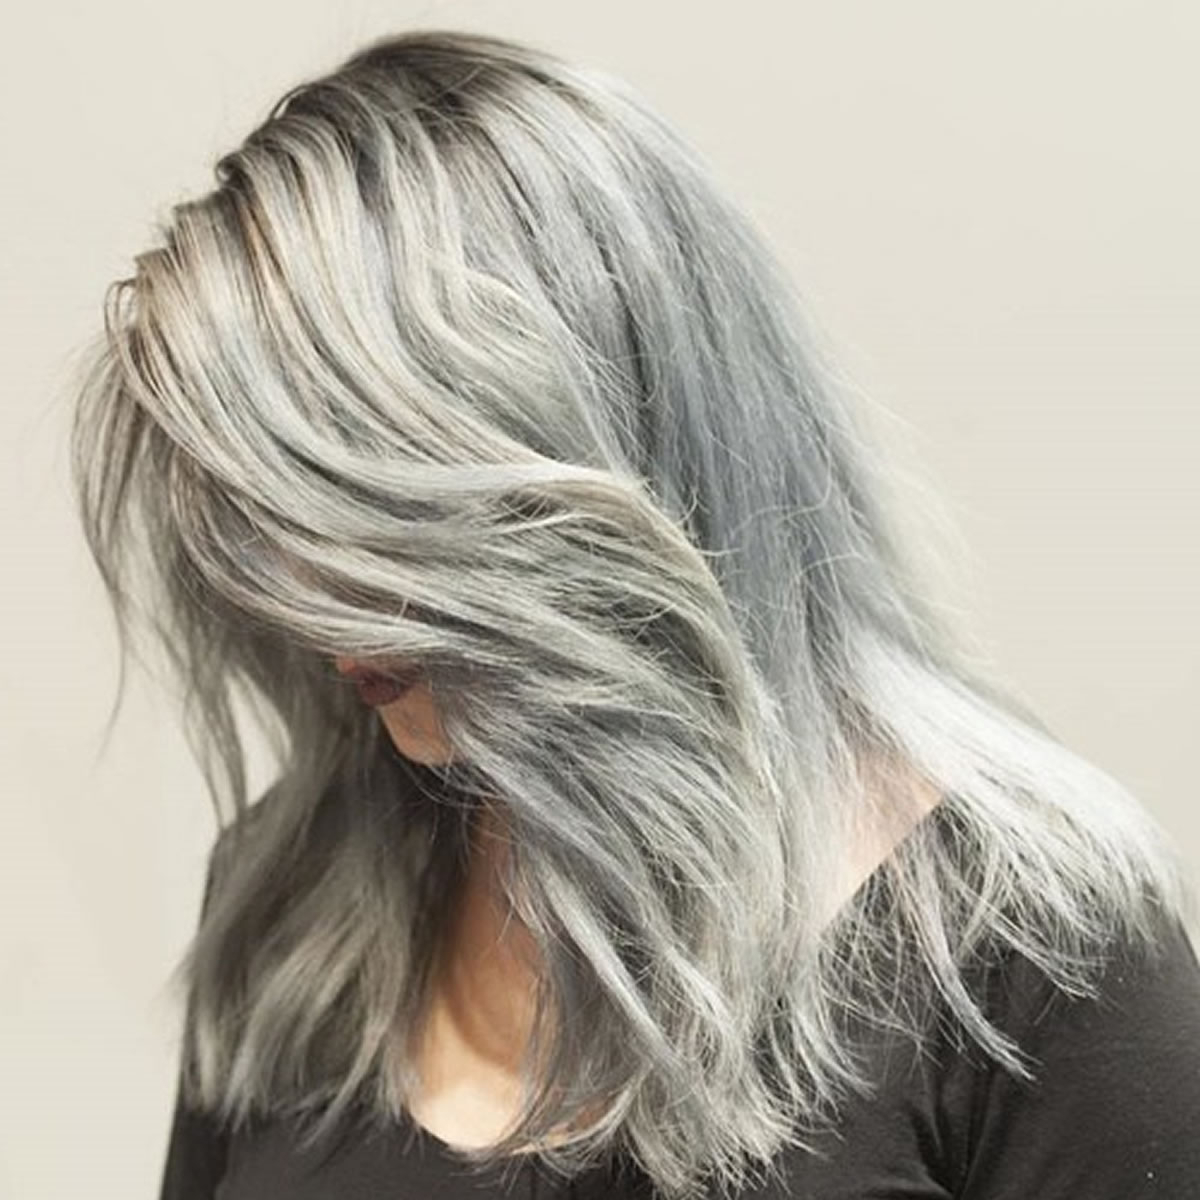 Grey Hair Trend – 20 Glamorous Hairstyles For Women 2018 – Hairstyles With 2017 Medium Haircuts For Grey Hair (View 11 of 20)